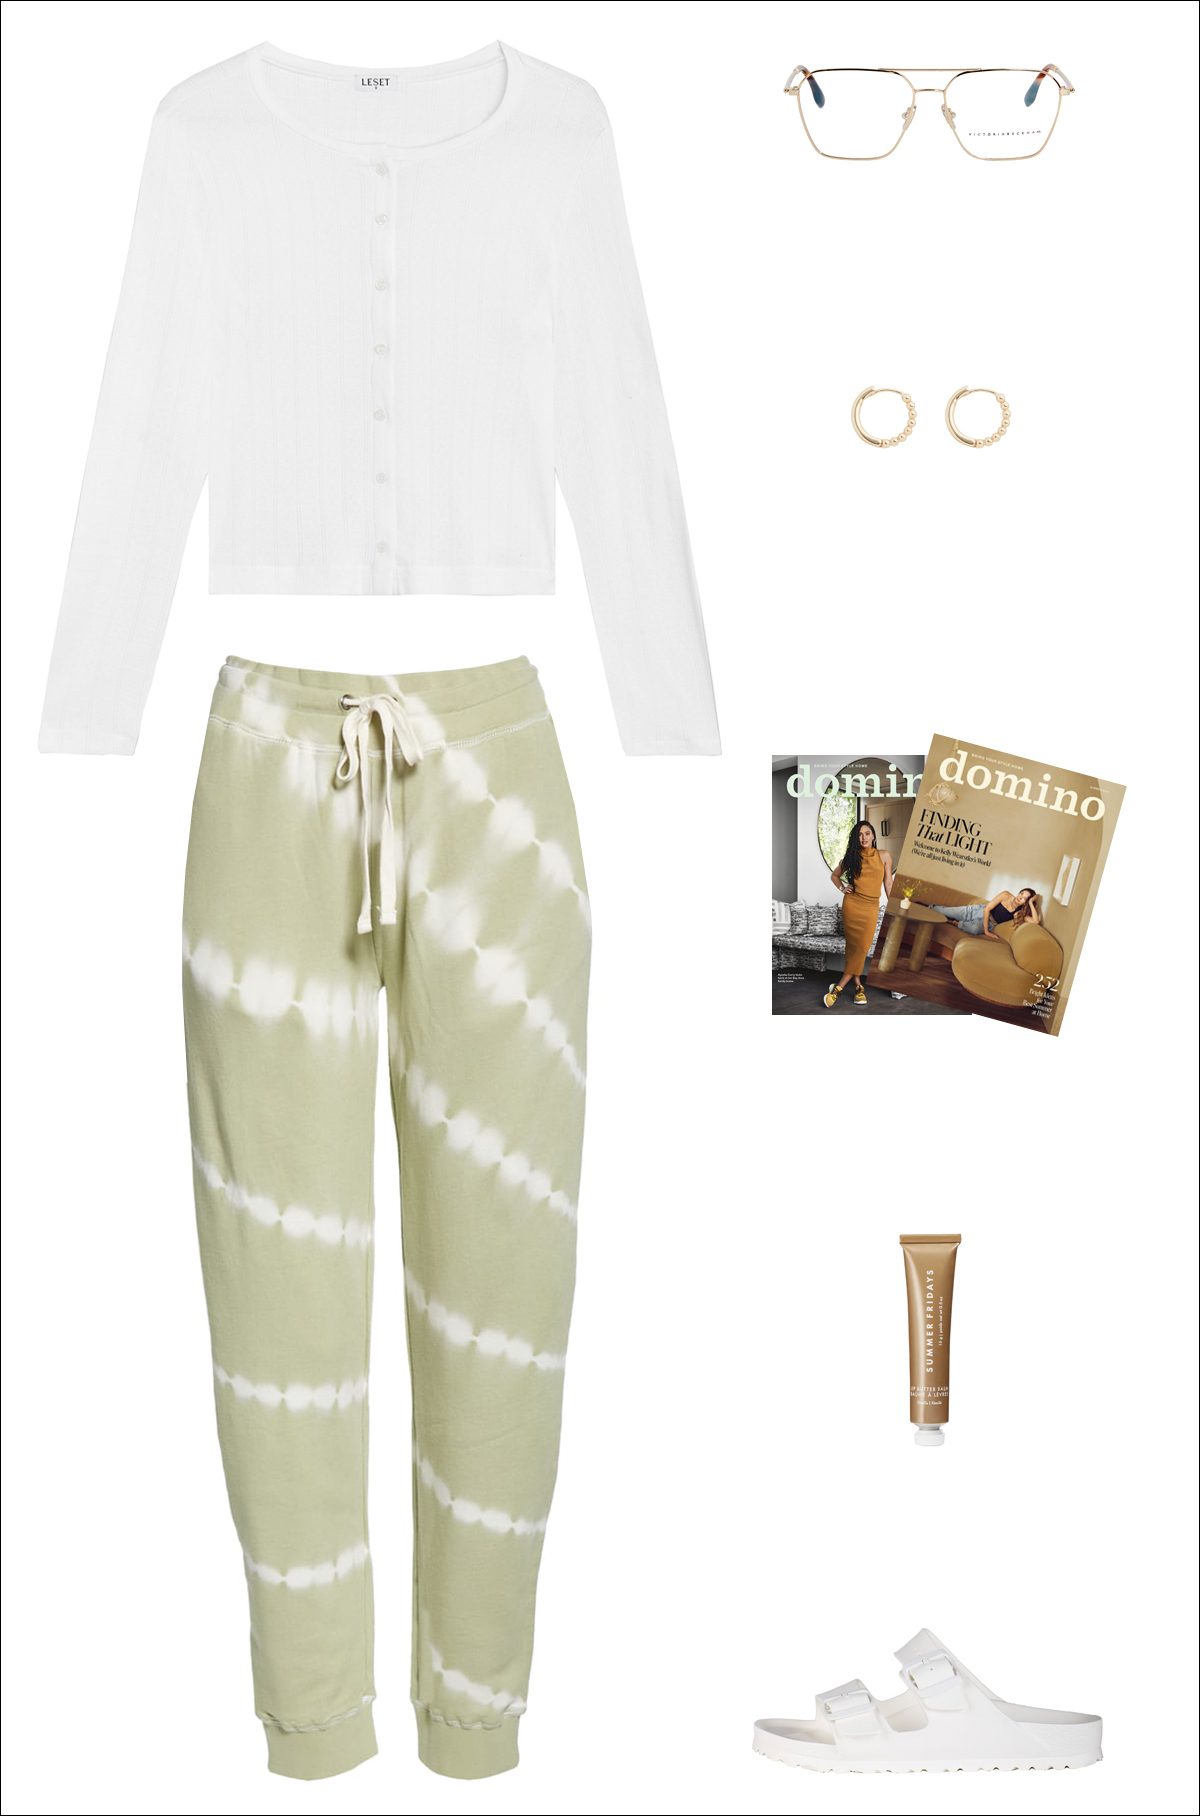 Minimalist Casual Loungewear Outfit Idea — White Cardigan, Aviator Optical Glasses, Studded Mini Hoop Earrings, Tie-Dye Sweatpant Joggers, and White Birkenstock Sandals